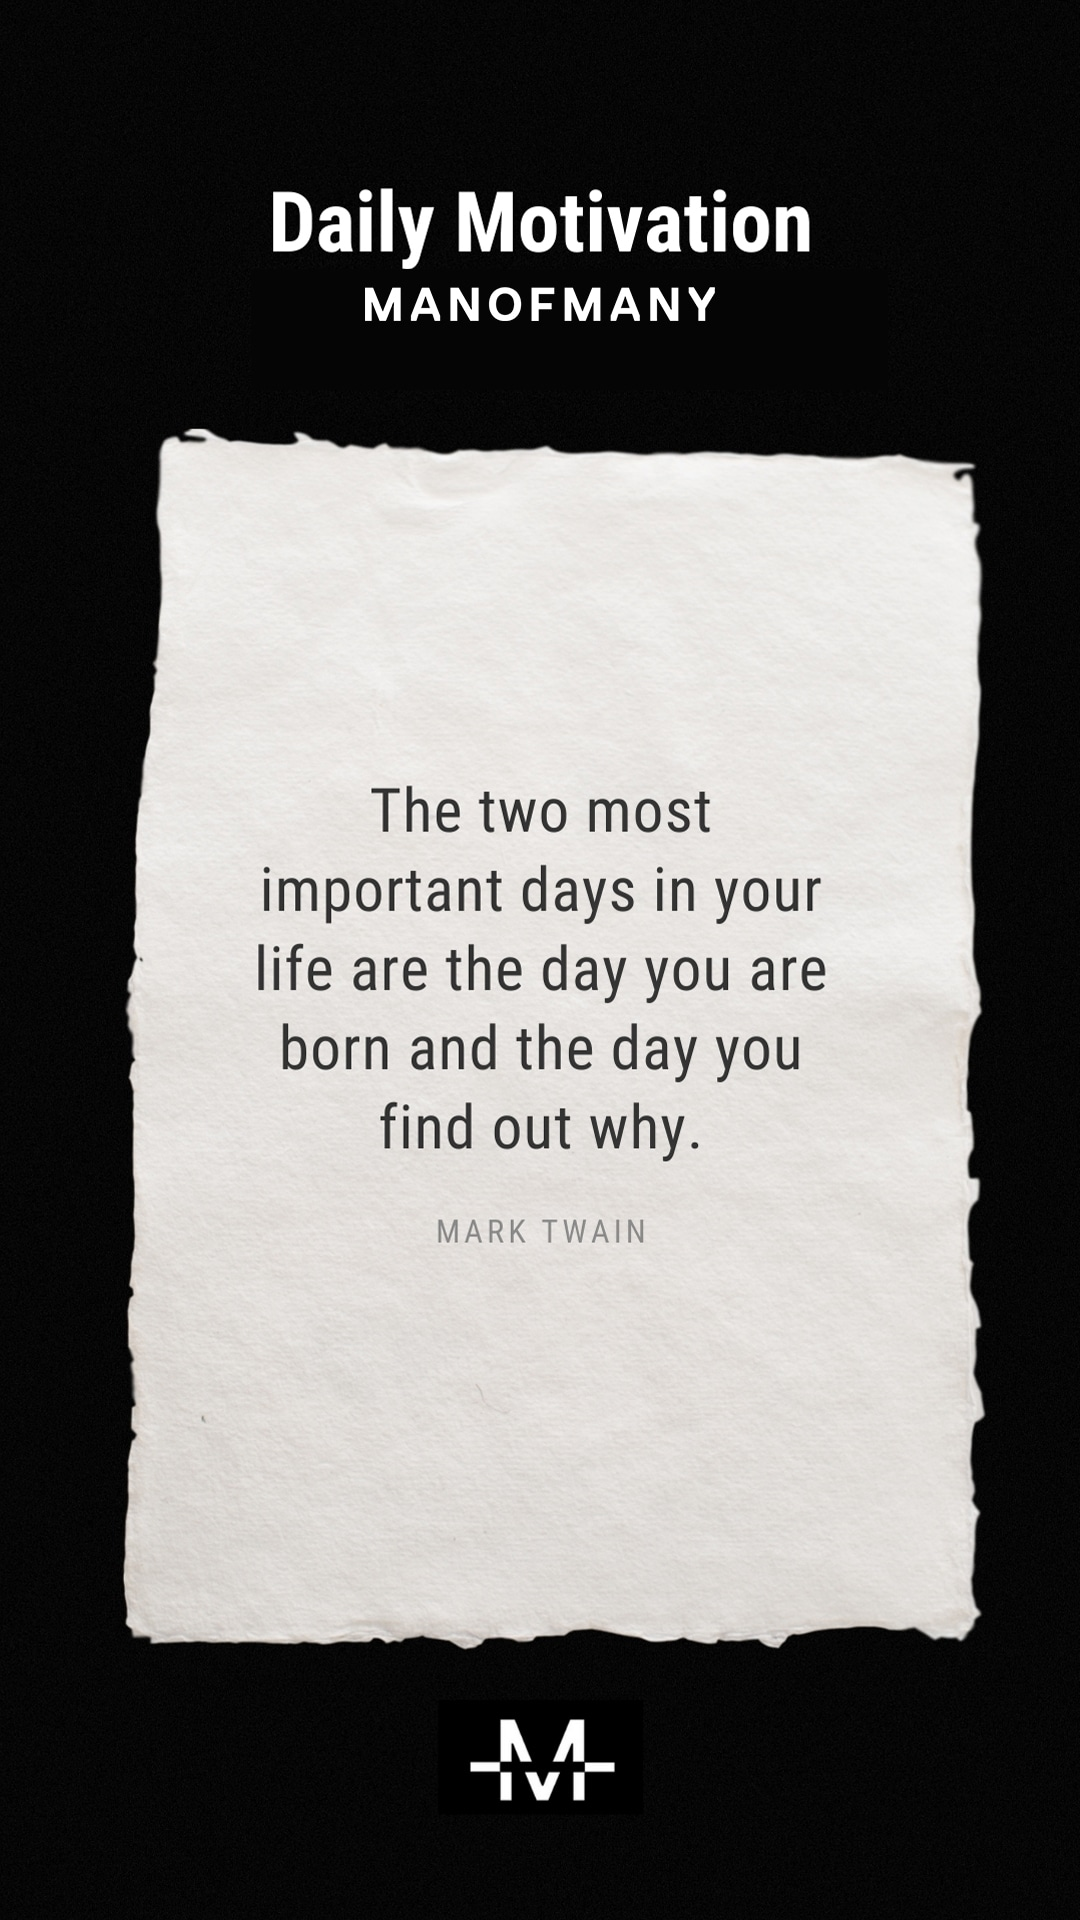 The two most important days in your life are the day you are born and the day you find out why. – Mark Twain quote